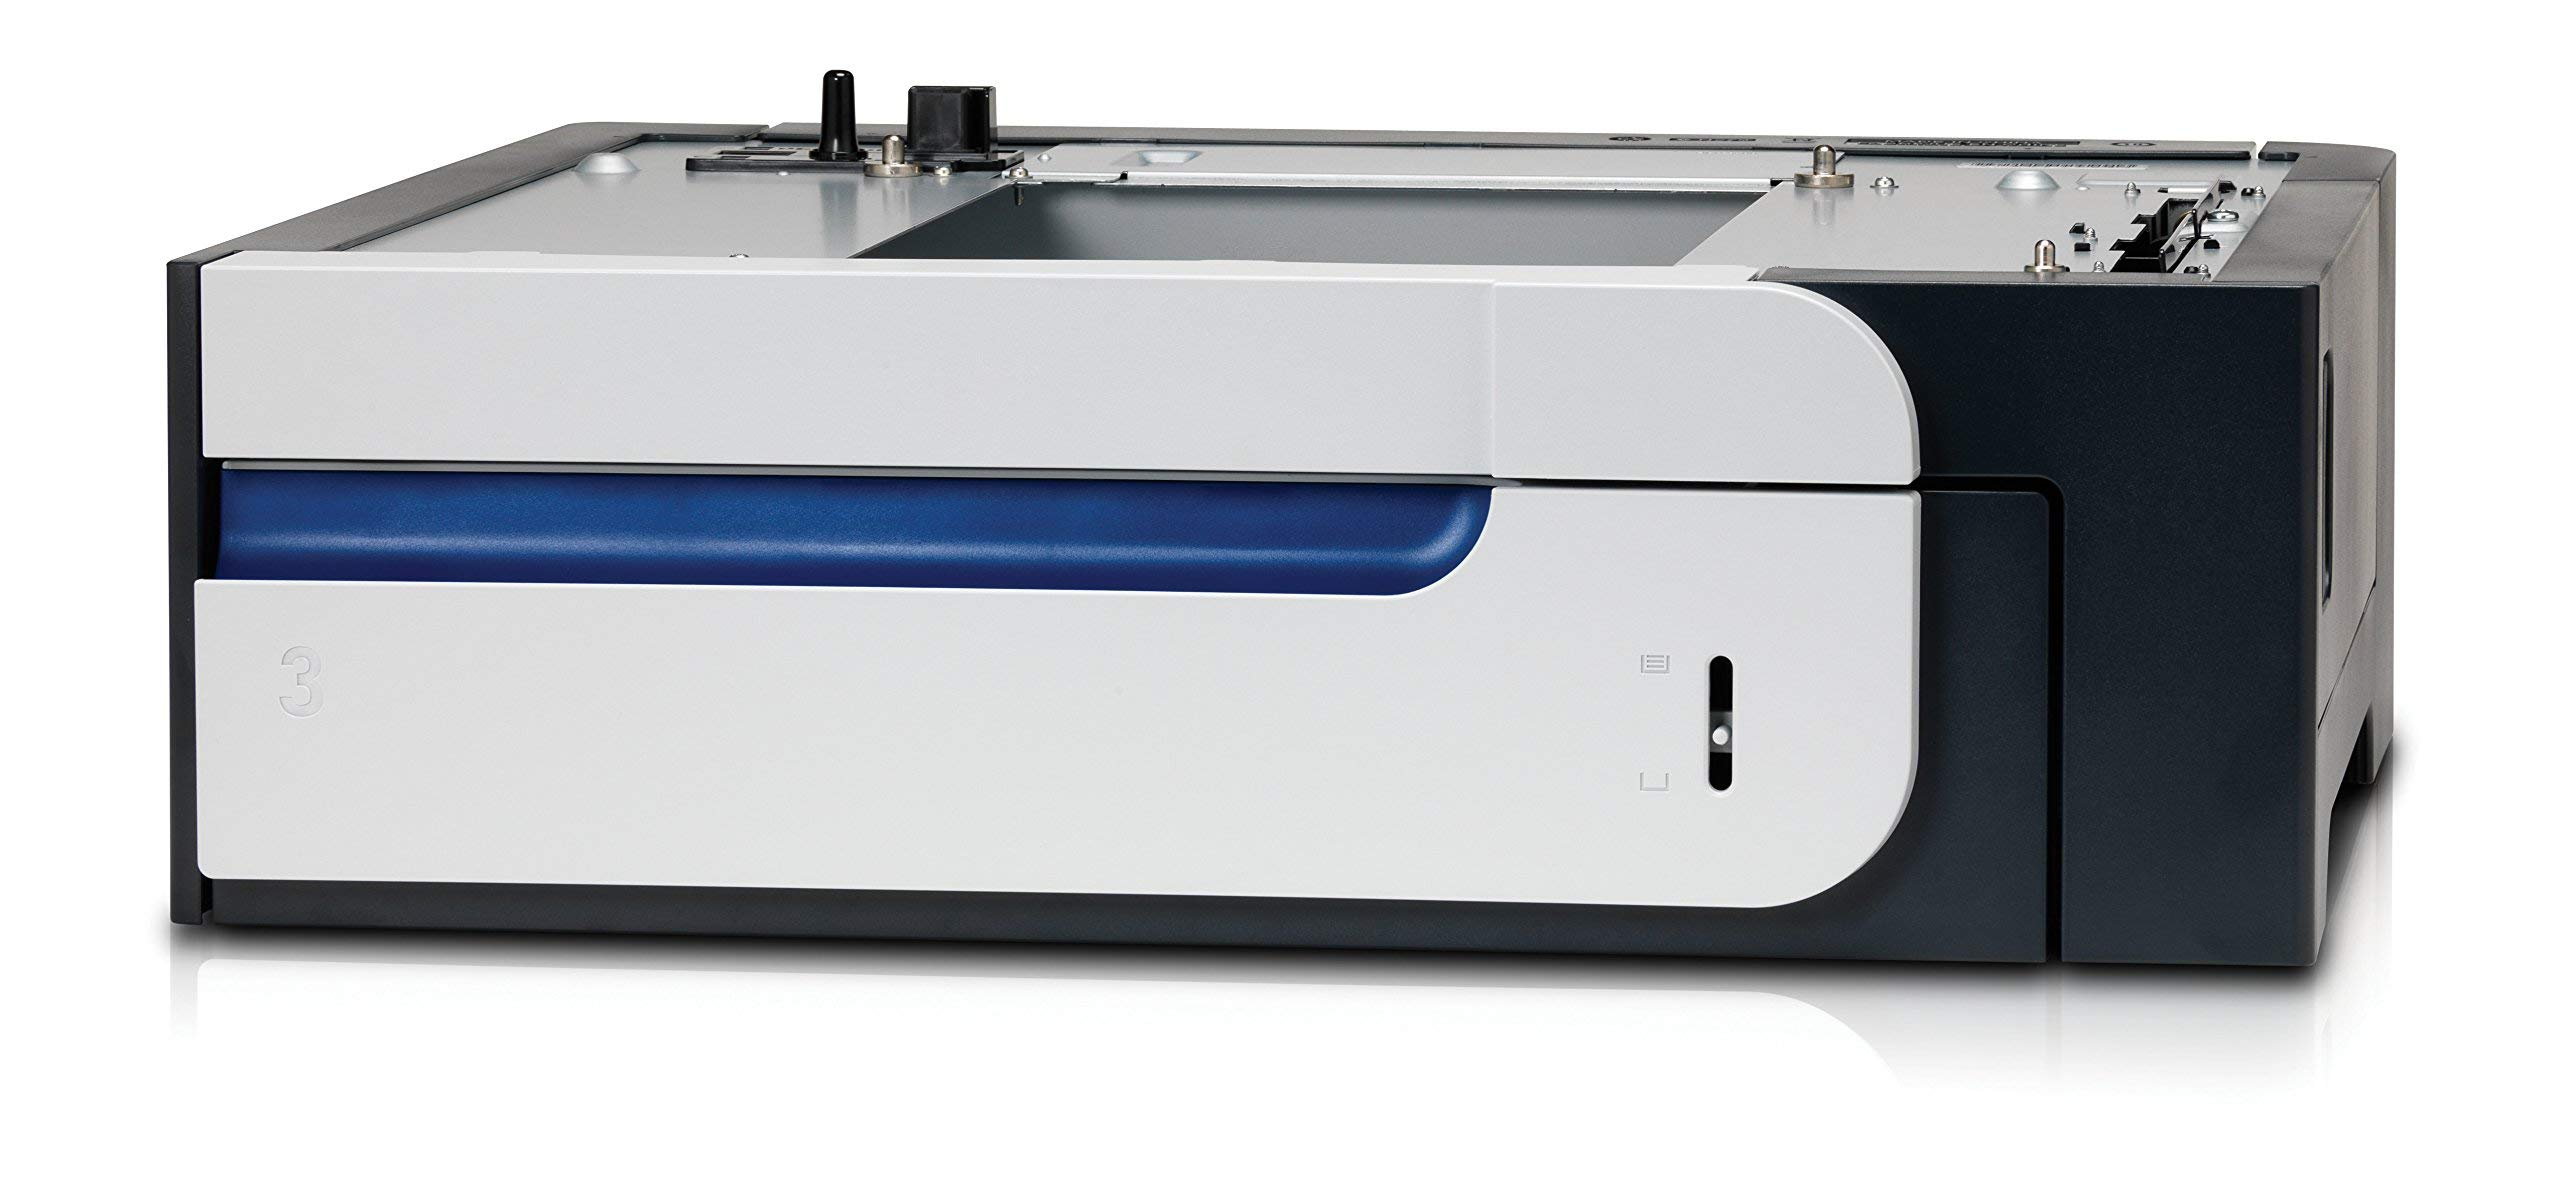 HP 669265-001 Heavy Media Paper Tray - Media tray - 500 sheets in 1 tray(s) - for Color LaserJet CM3530 MFP, CM3530fs MFP, CP3525, CP3525dn, CP3525n, CP3525x (Renewed) by HP (Image #2)